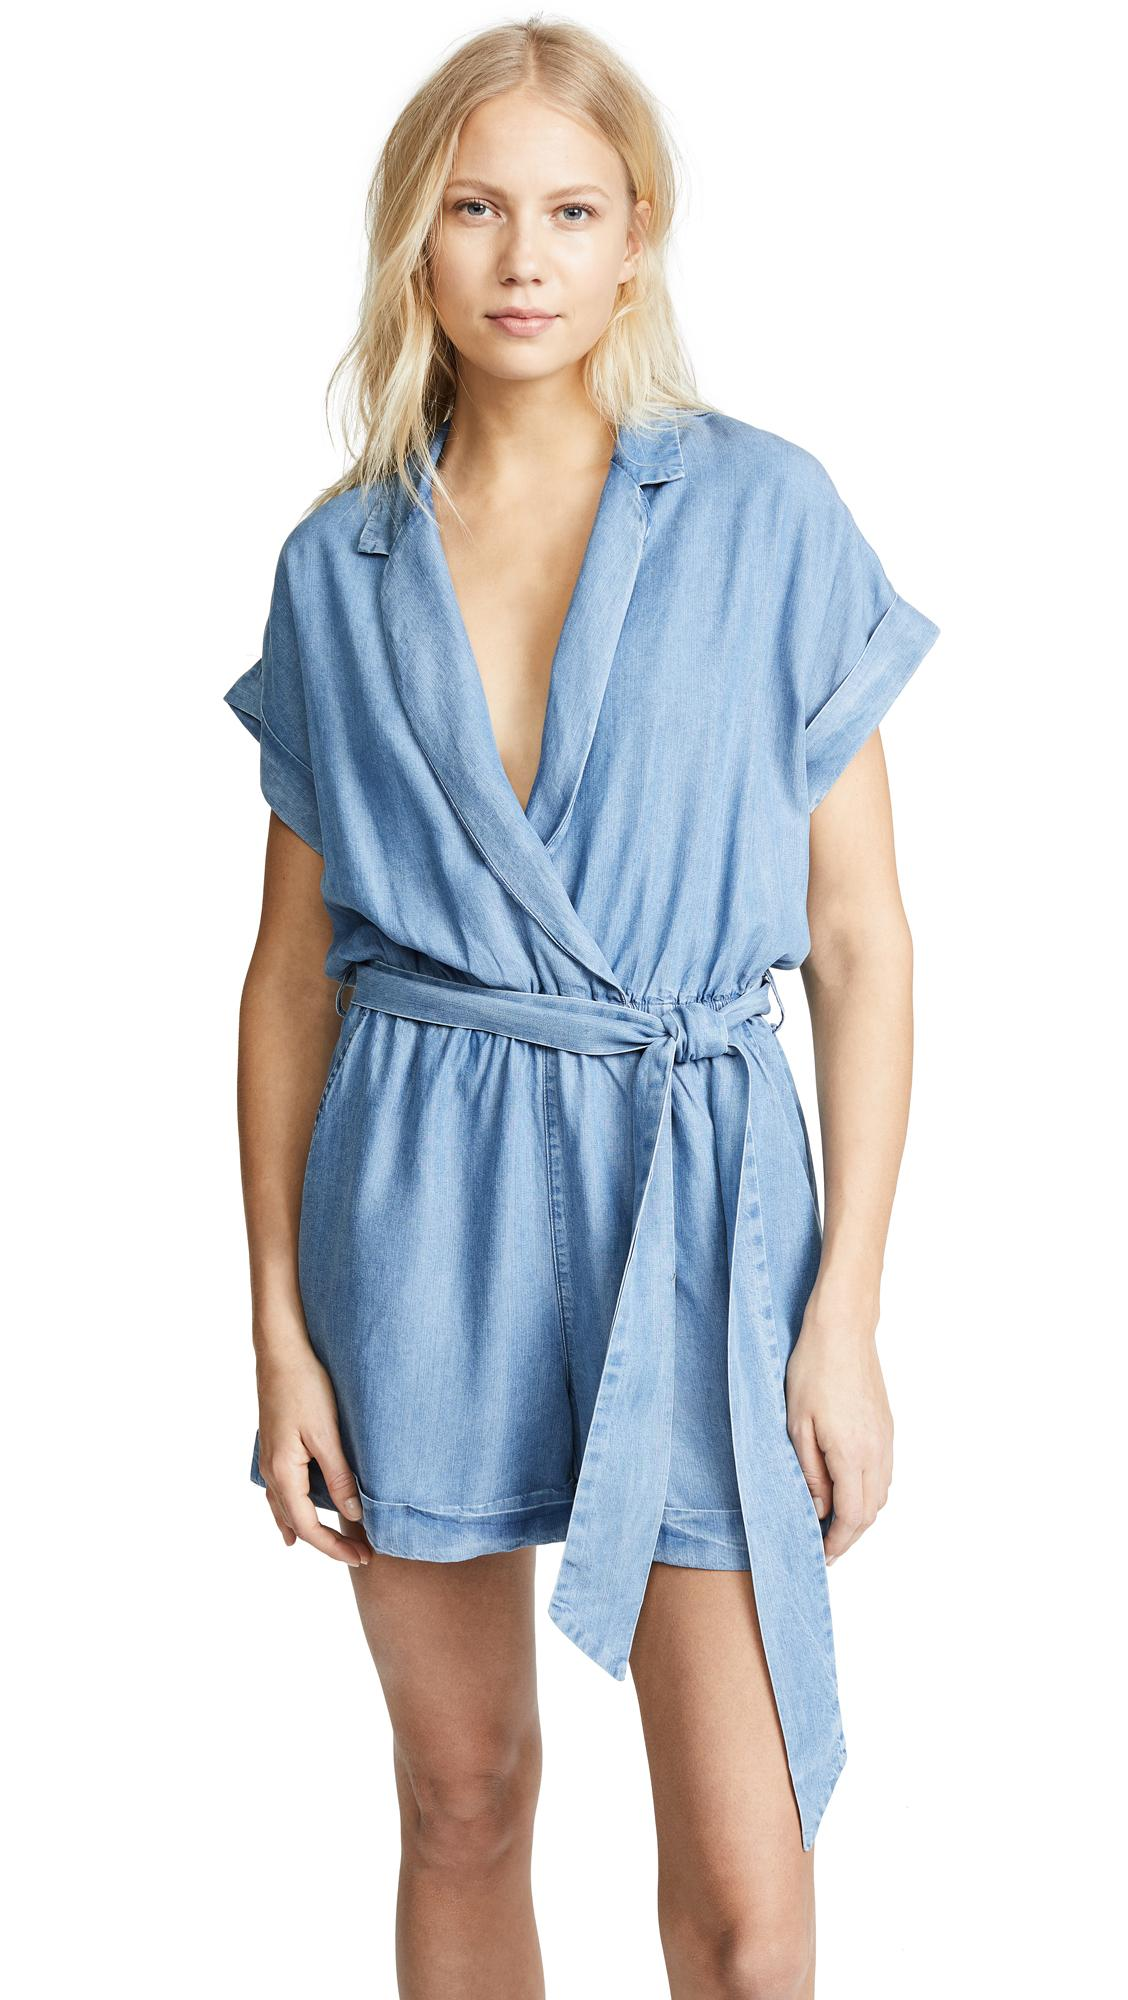 Etienne Marcel Shorts Romper In Chambray